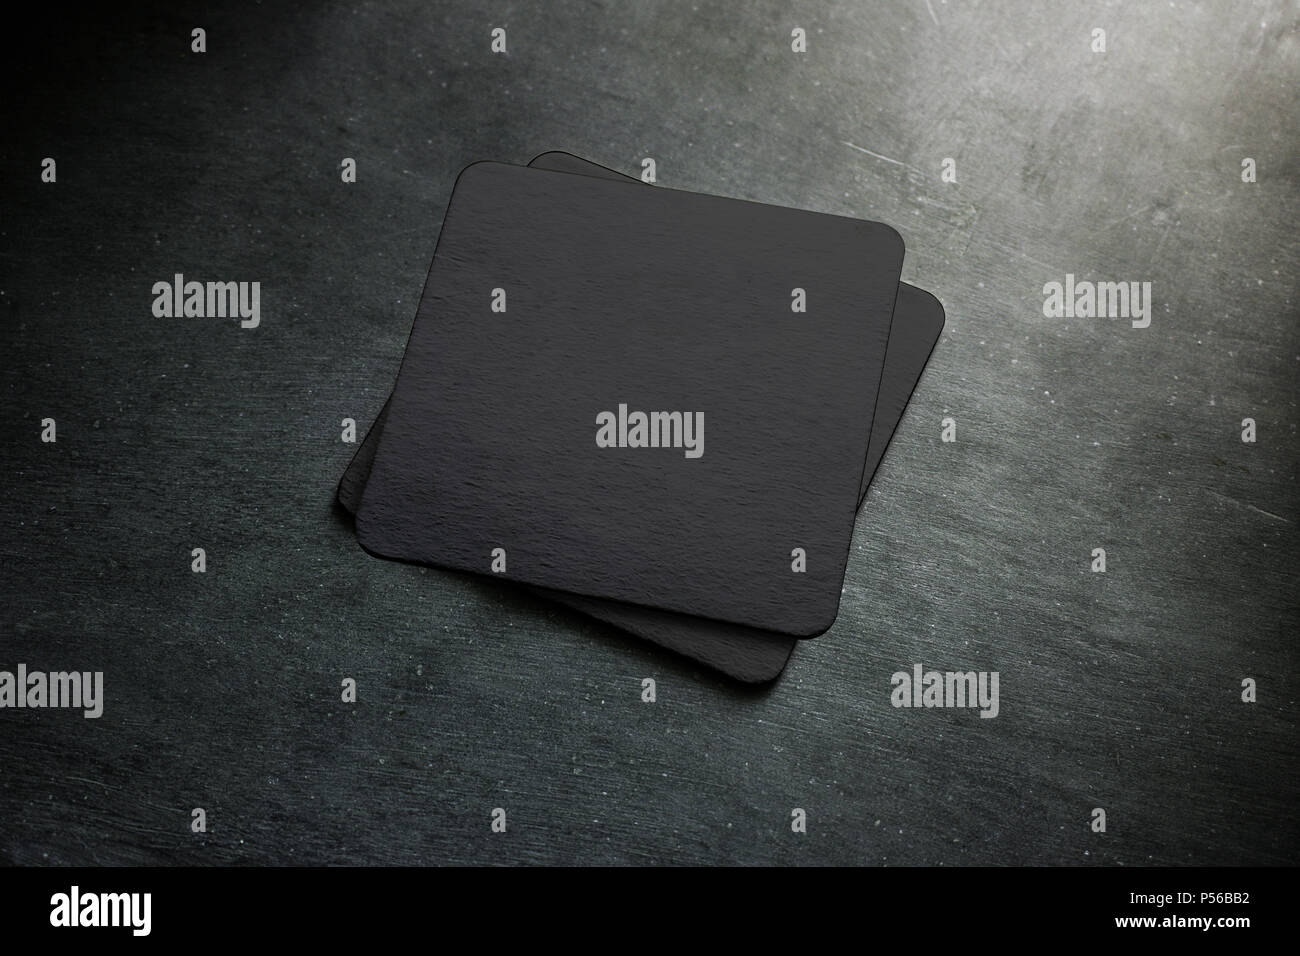 Blank black beer coaster stack mock up, top view, lying on the textured background. Squared clear can mat design mockup isolated. Quadrate cup rug display Stock Photo